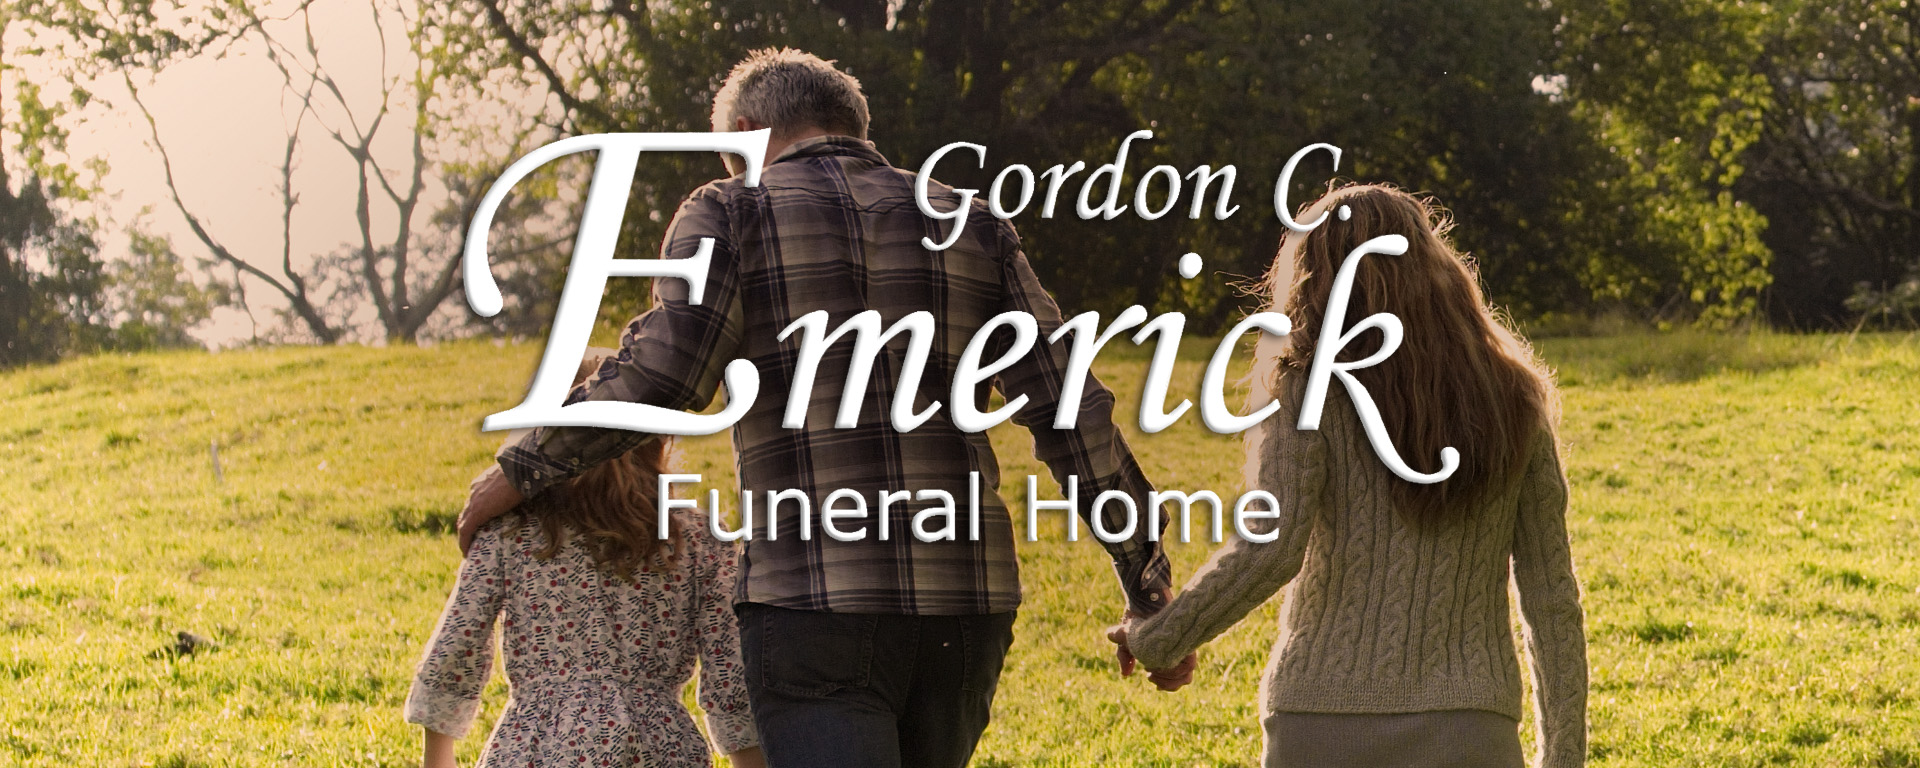 Send Flowers Gordon C Emerick Funeral Home Proudly Serving Our